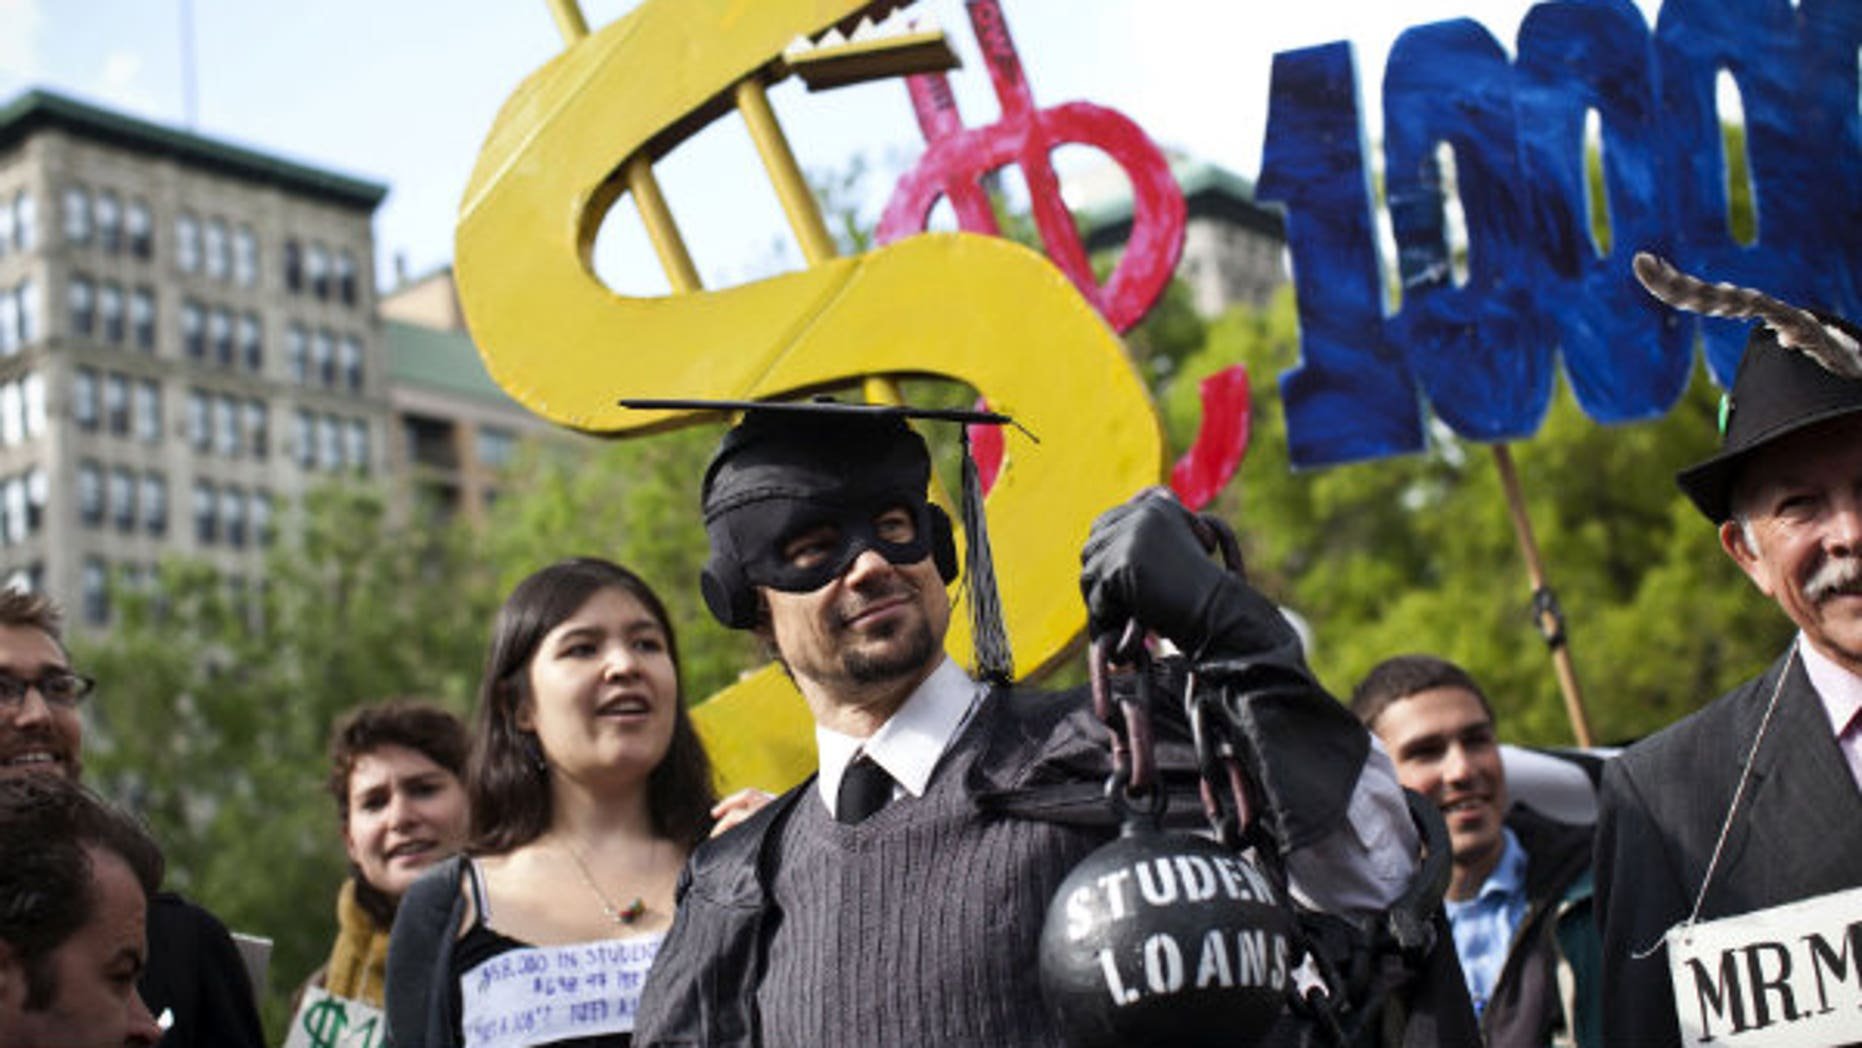 Protesting the student loan system.